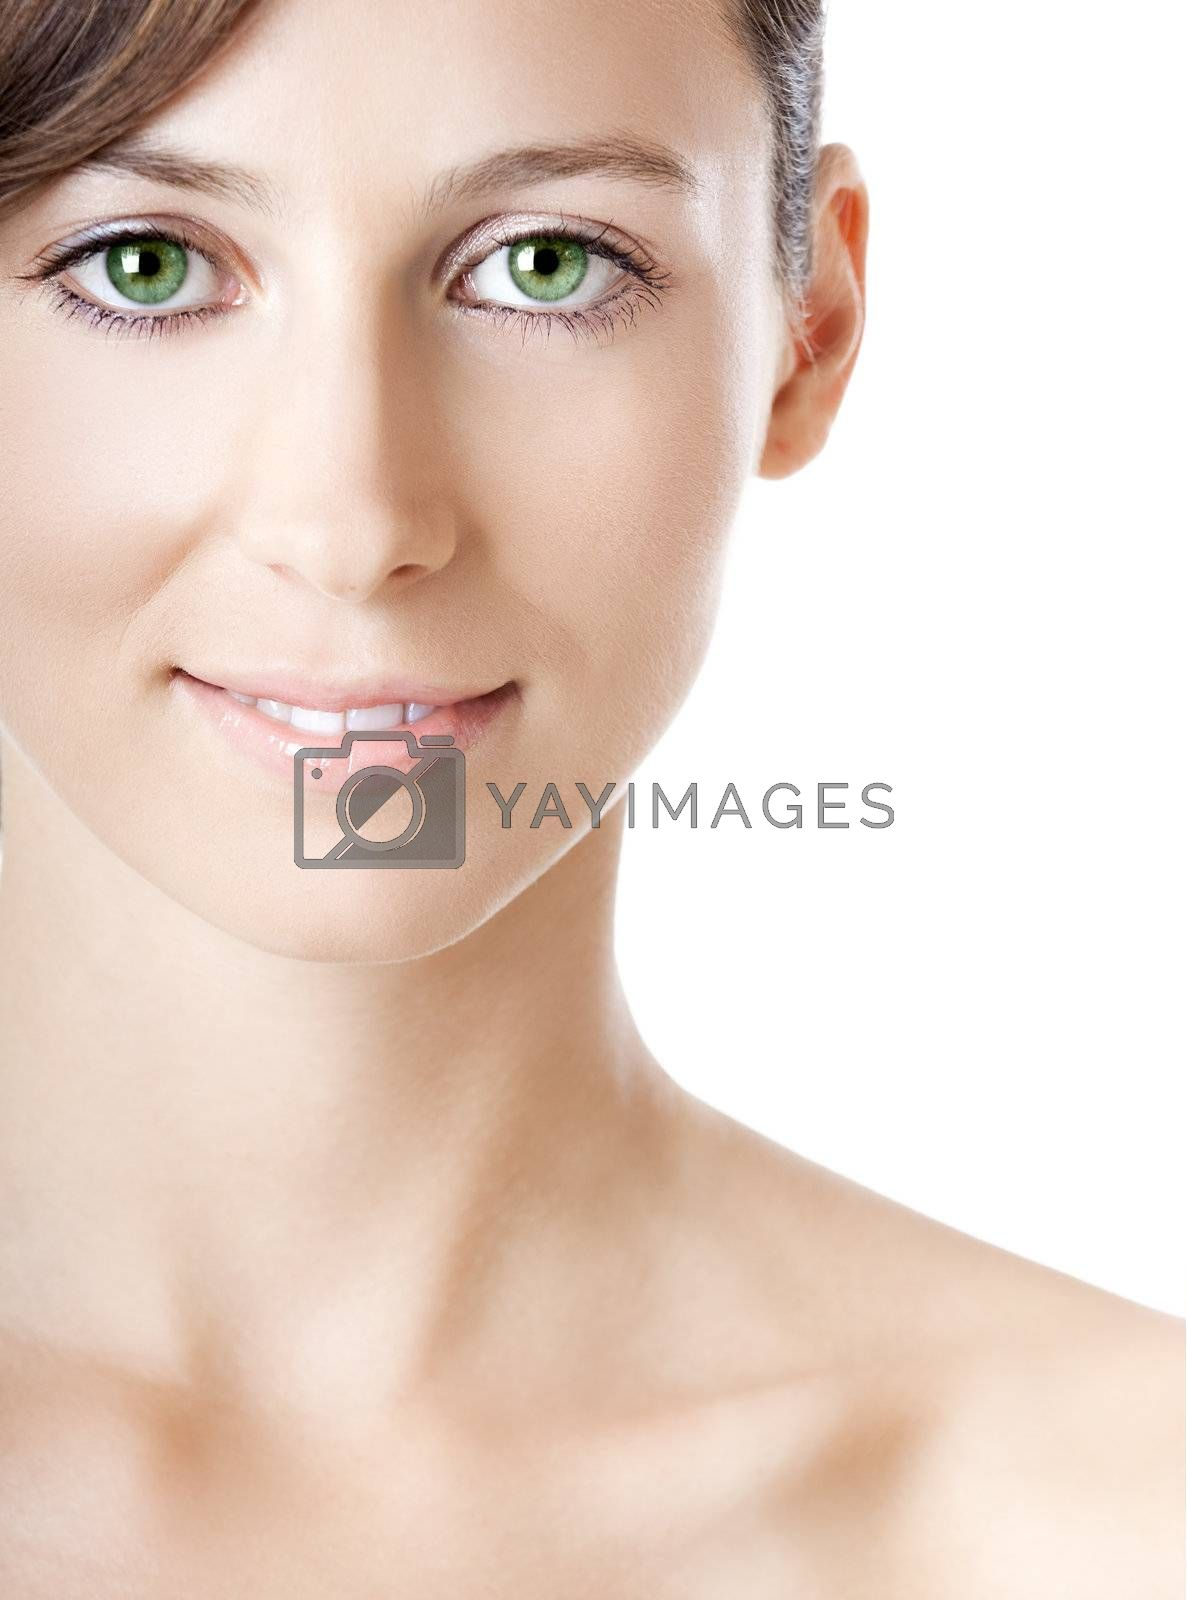 Young woman with beautiful green eyes, isolated on white